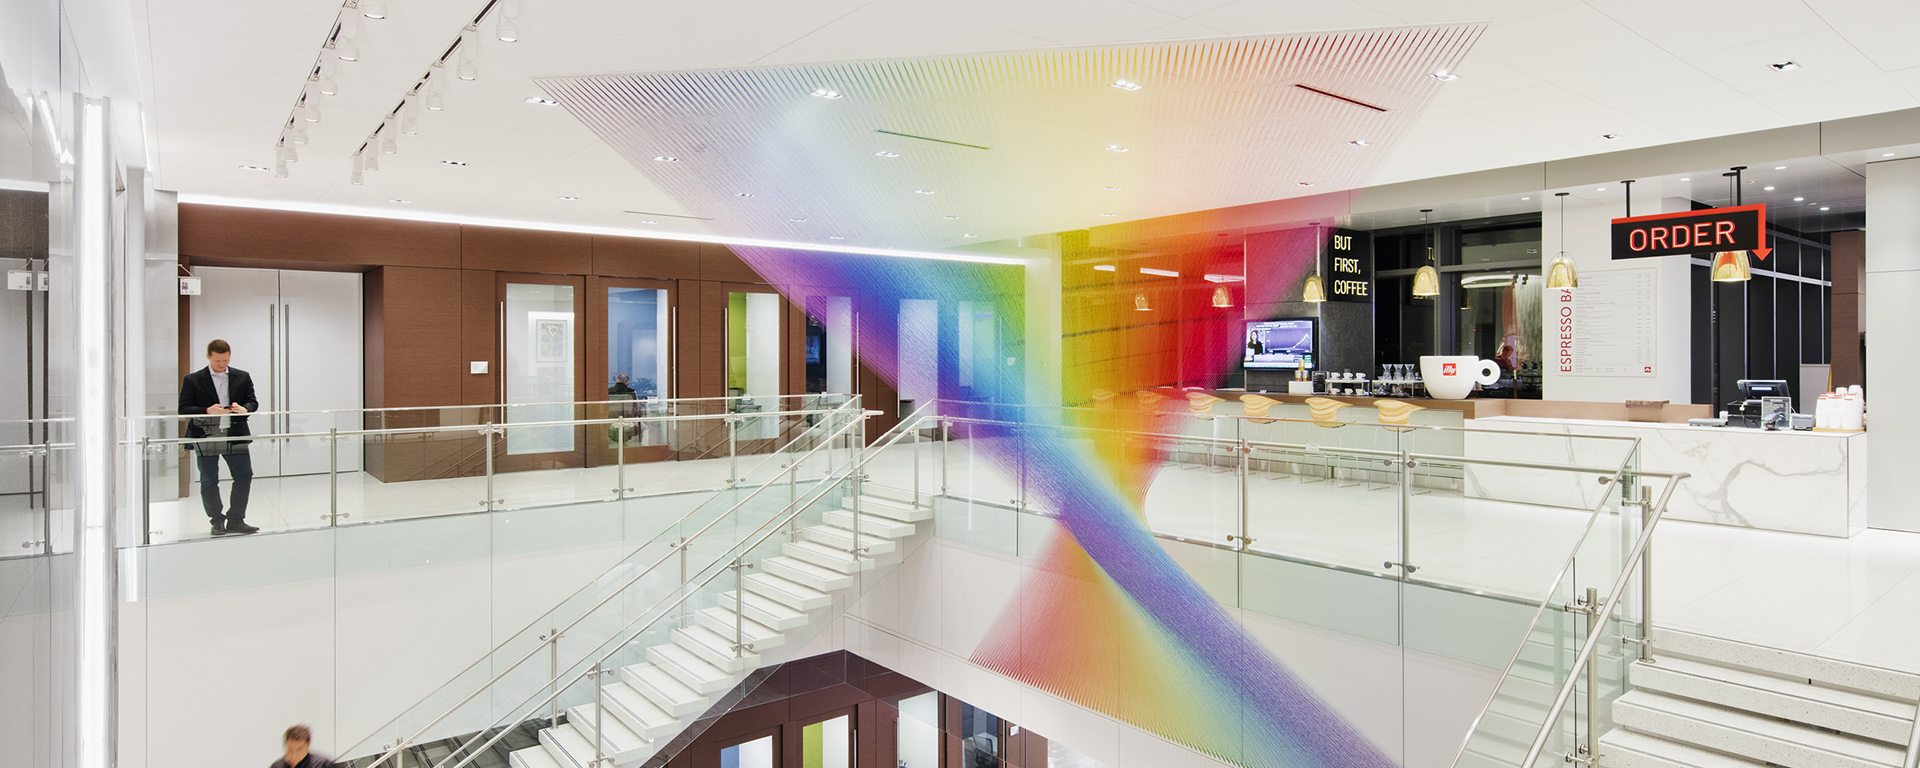 Gabriel Dawe, Plexus C23, 2018 Artwork displayed in the workplace through the Capital One Artwork Program